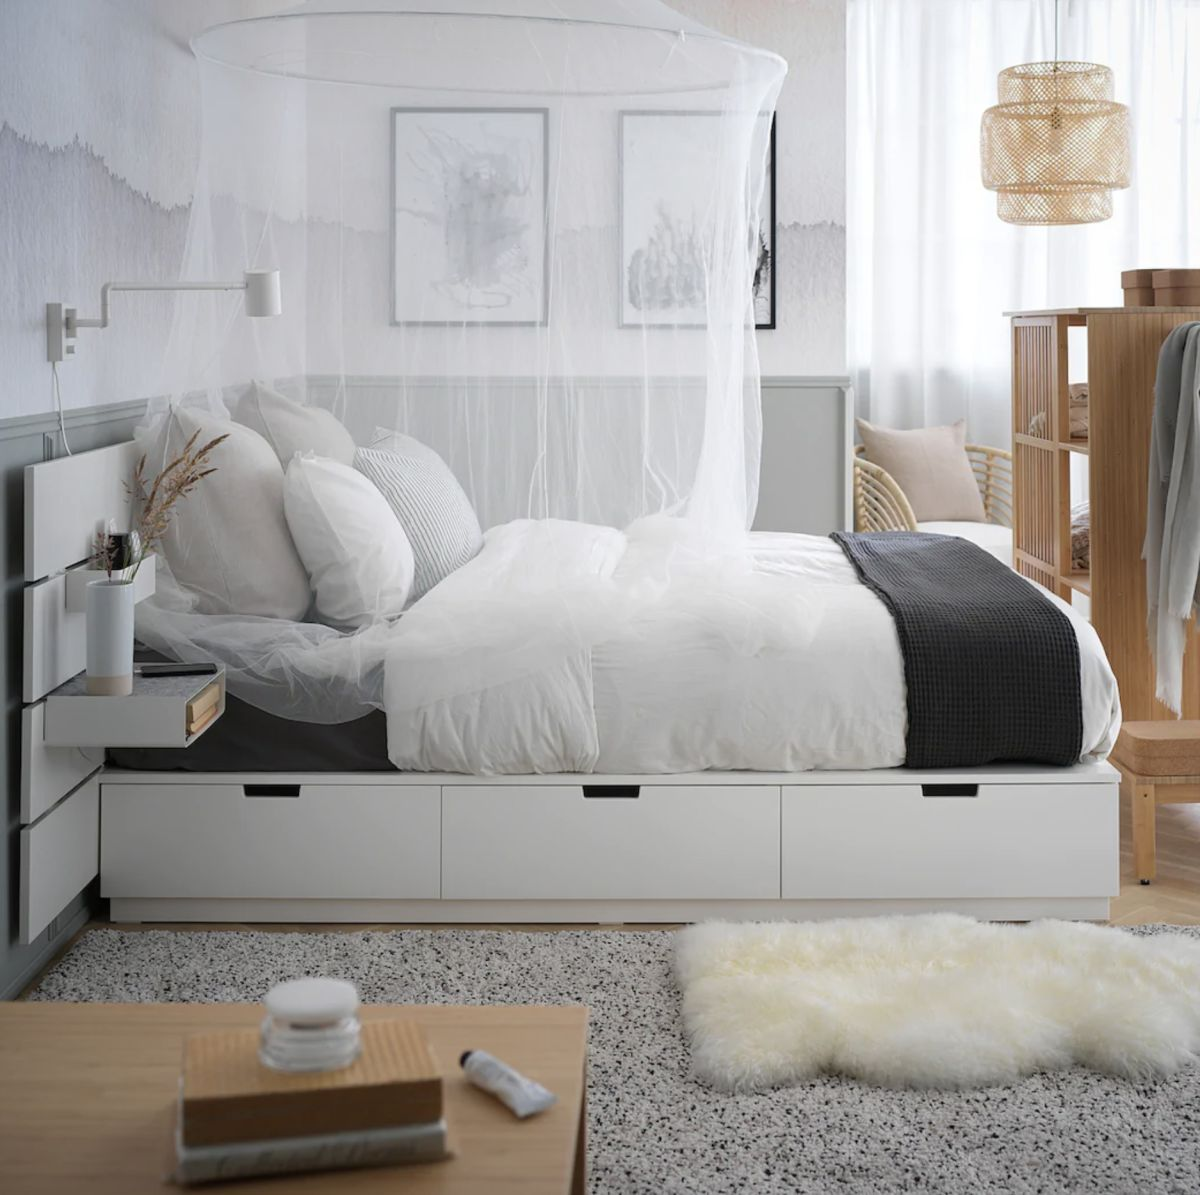 Ikea Small Bedroom Ideas: These 3 Ikea Storage Beds Will Solve All Your Small